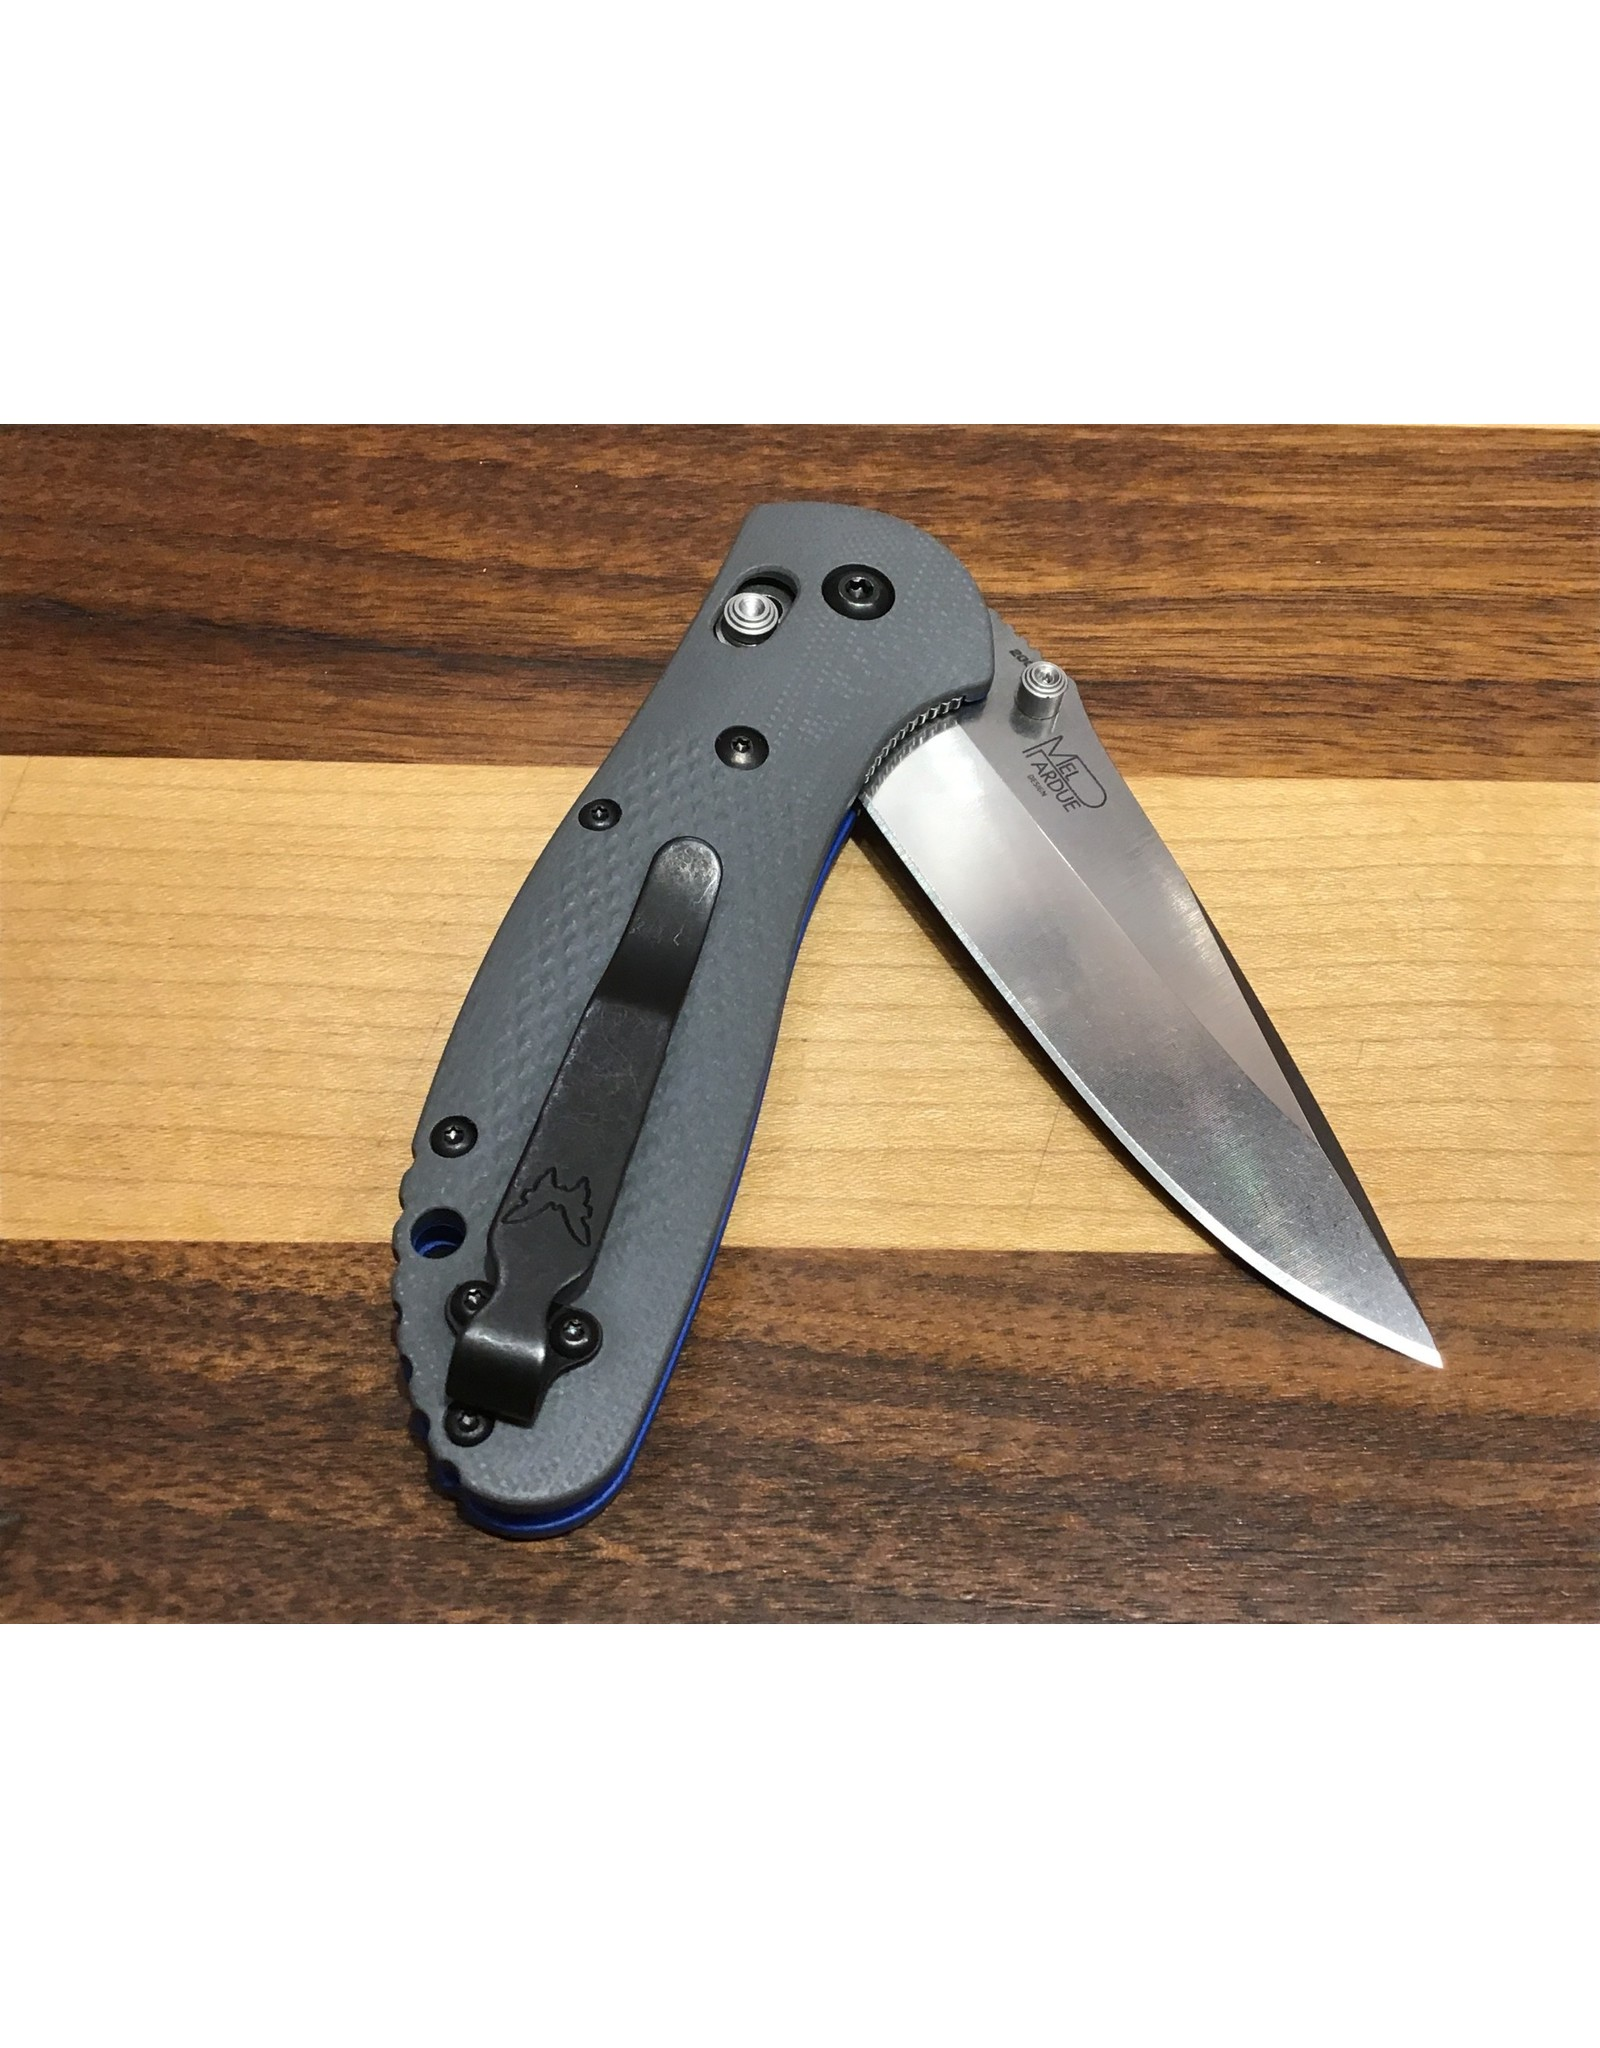 Benchmade Griptilian UPGRADED CPM20CV with Grey & Blue G-10